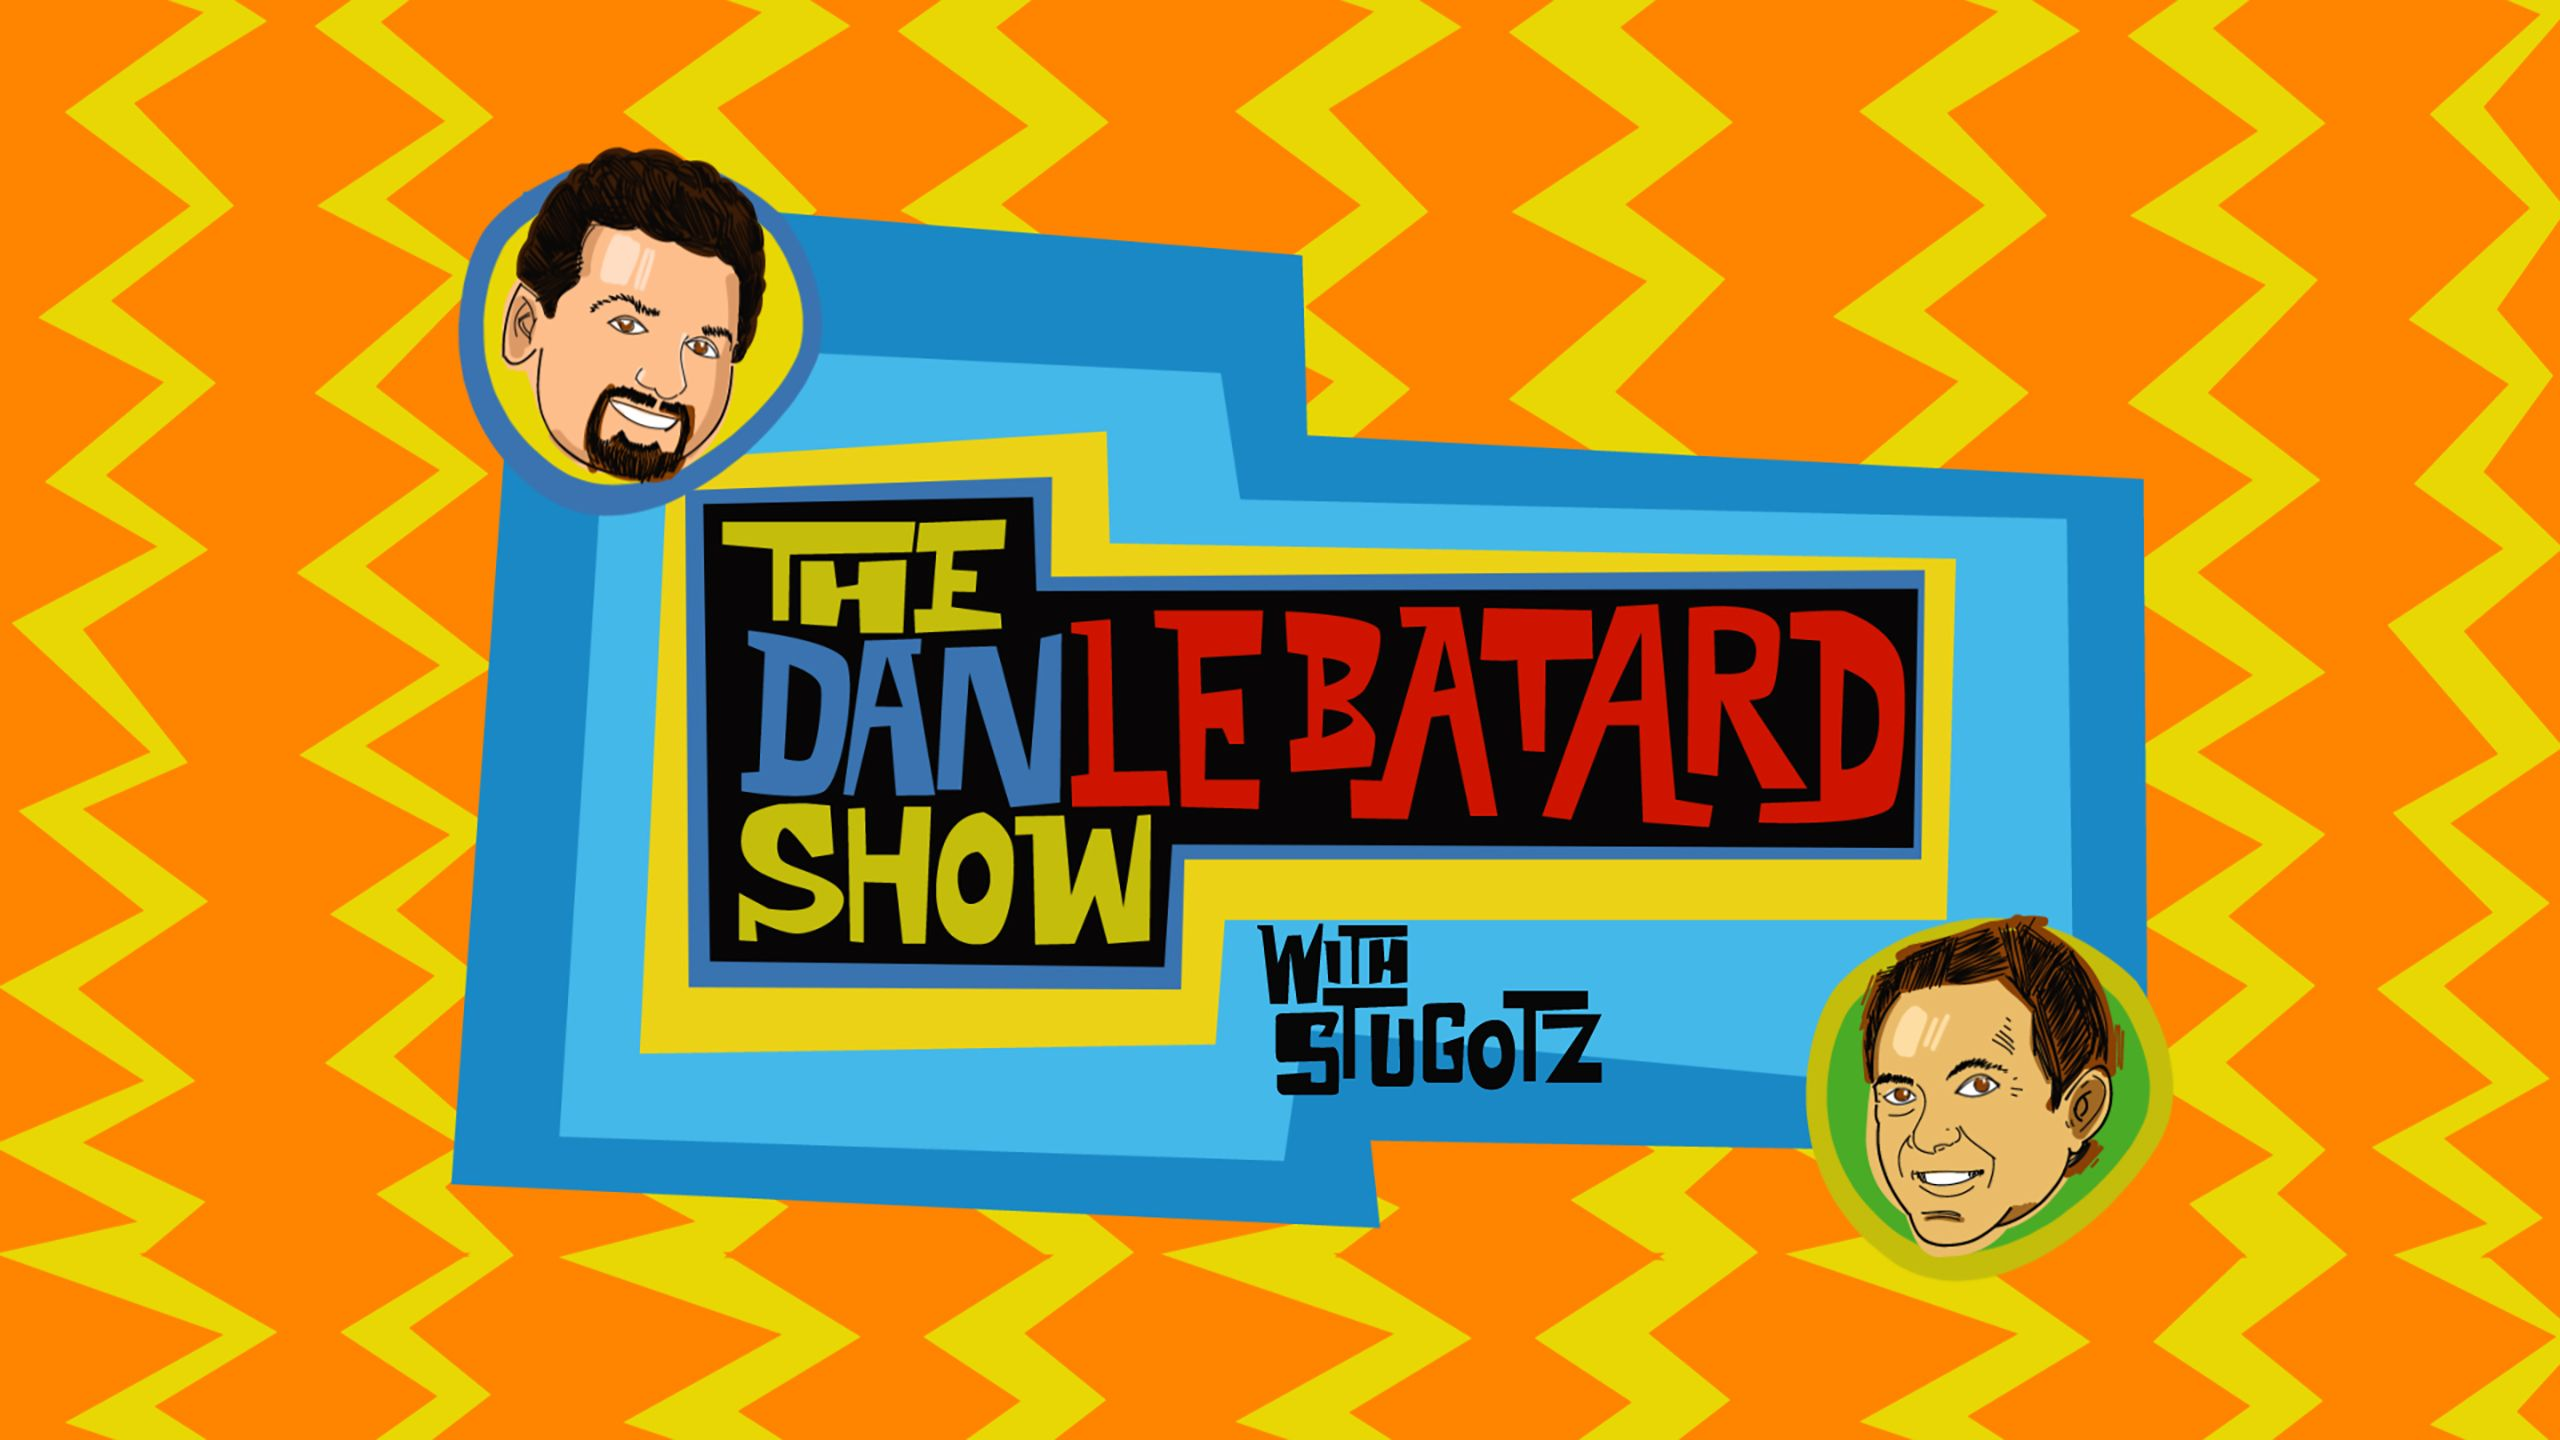 Wed, 4/25 - The Dan Le Batard Show with Stugotz Presented by Progressive